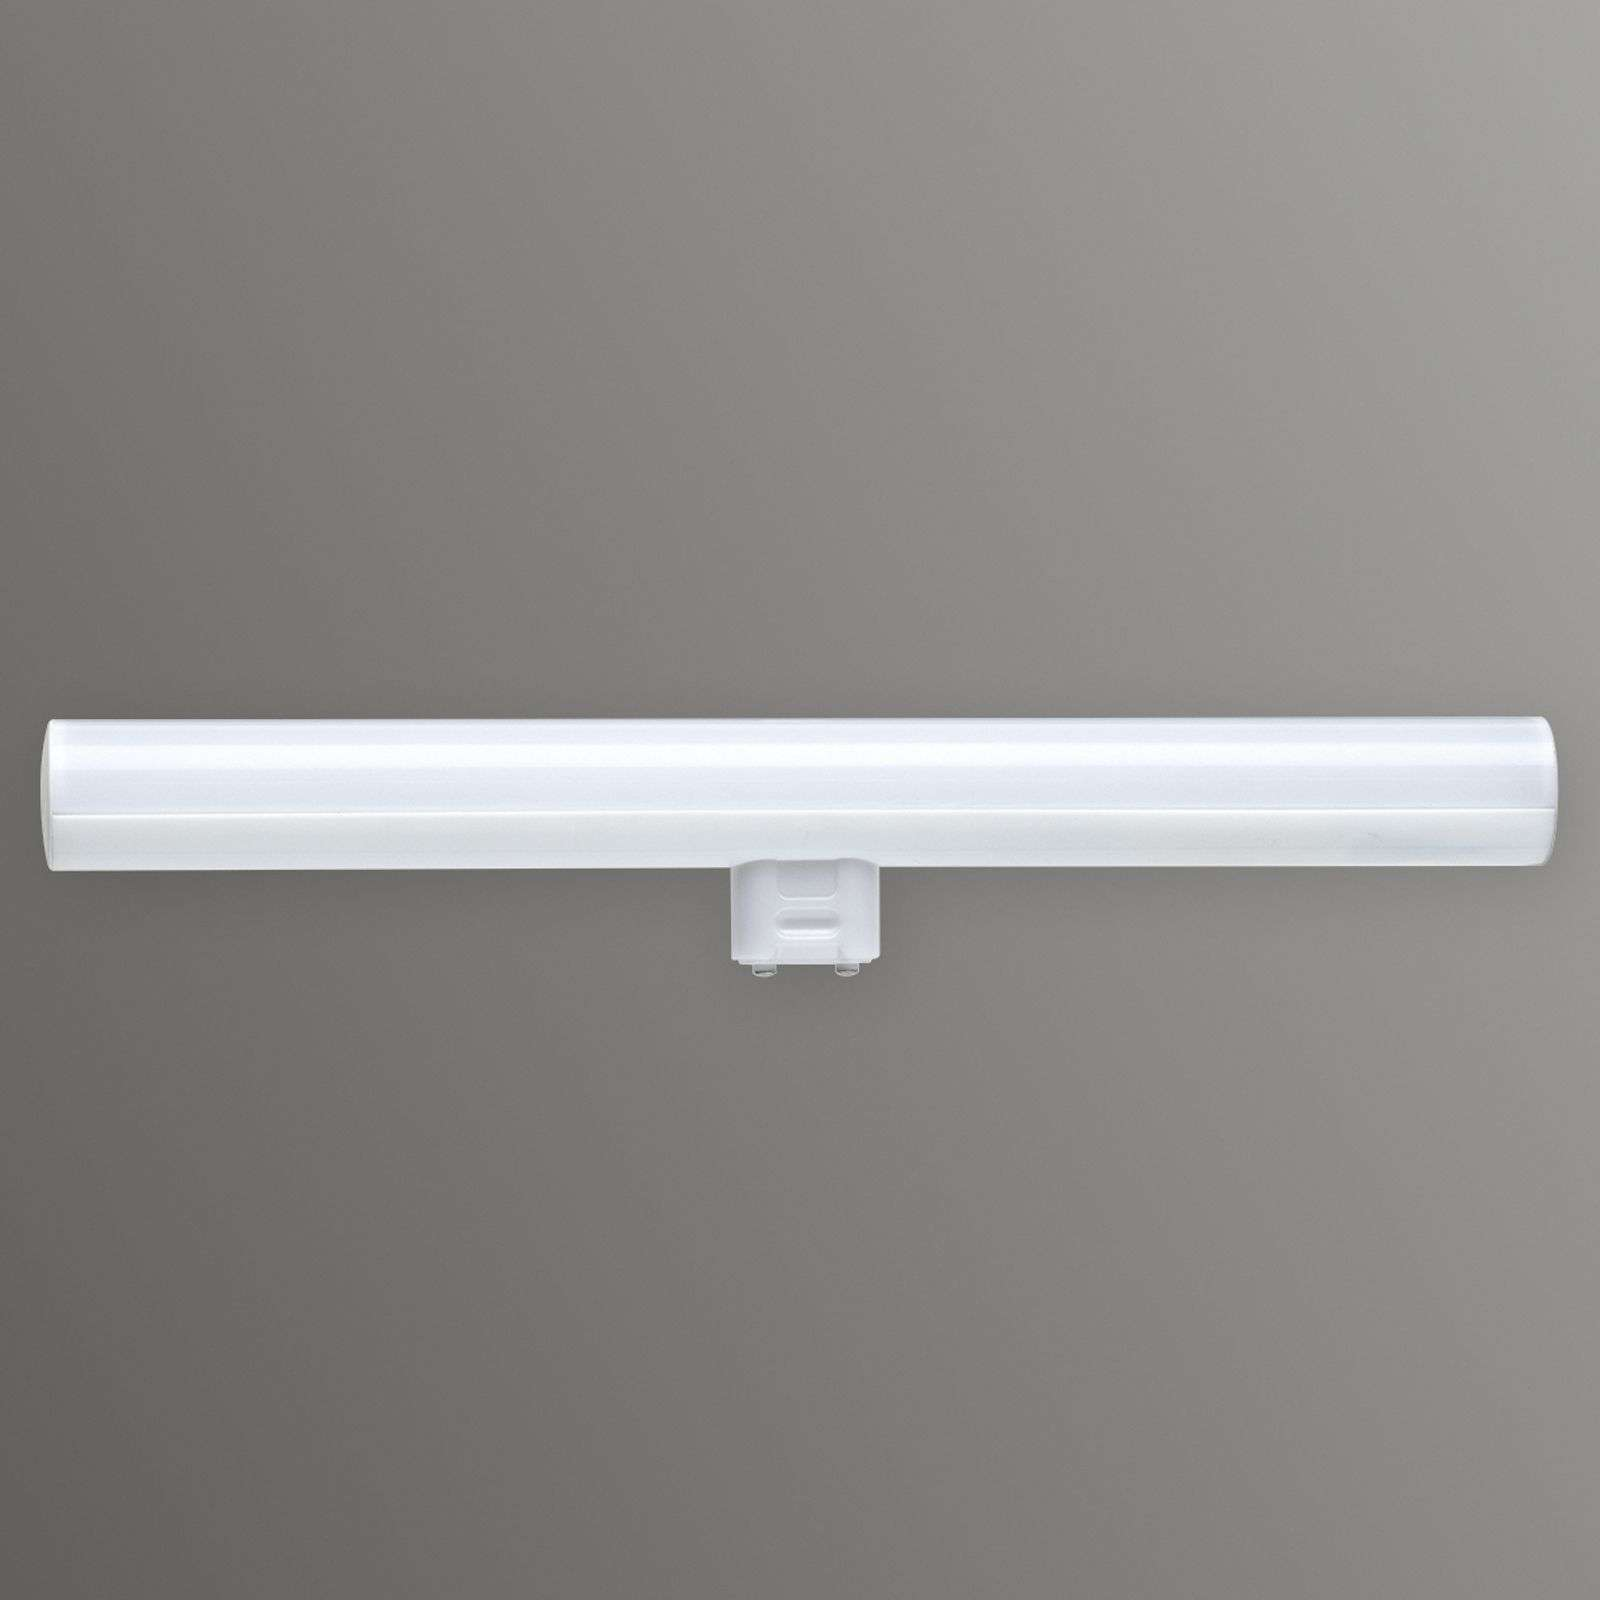 S14d 4W 827 lampadina LED lineare 1 attacco 300mm